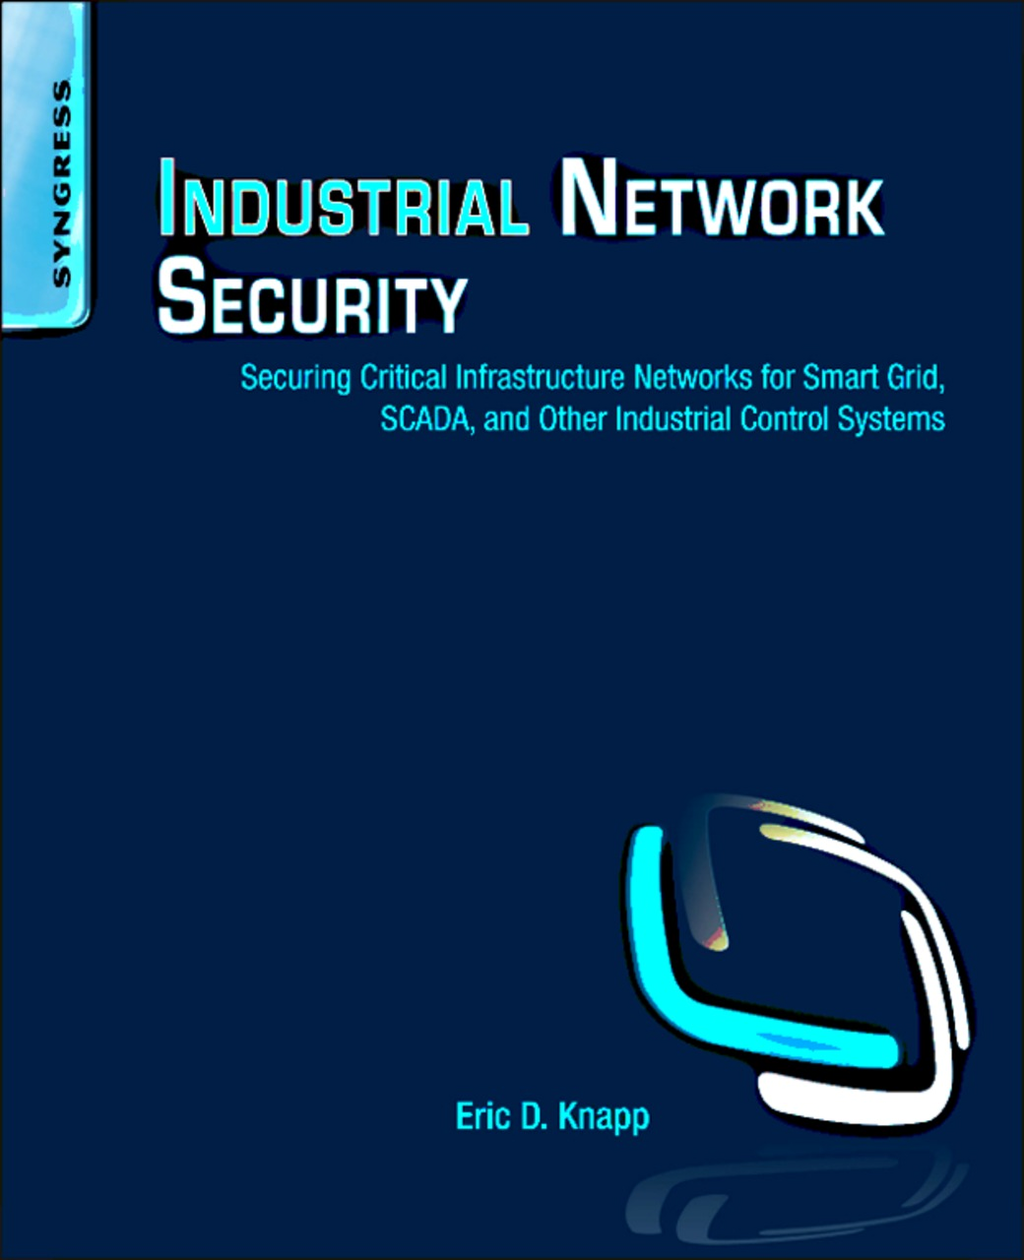 Industrial Network Security Securing Critical Infrastructure Networks for Smart Grid,  SCADA,  and Other Industrial Control Systems